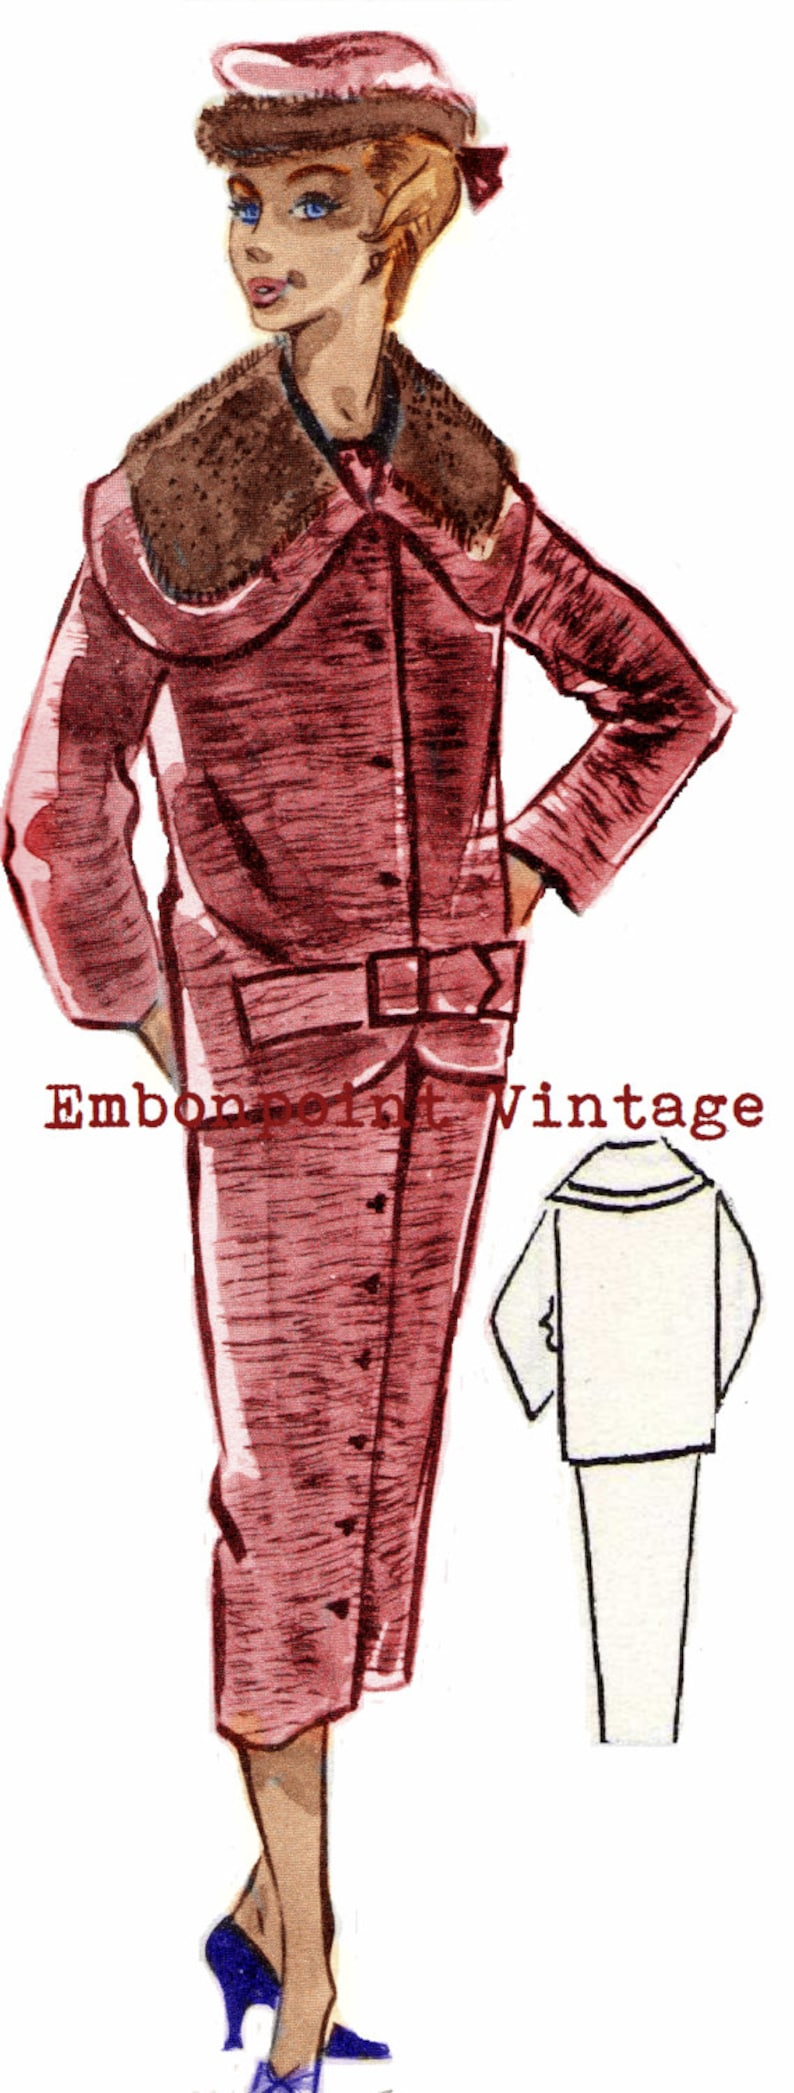 1950s Fabrics & Colors in Fashion Vintage Sewing Patterns Plus Size (or any size) 1956 Wiggle Dress & Jacket - PDF - Pattern No 38 Lourdes 1950s 50s Patterns Instant Download $12.28 AT vintagedancer.com